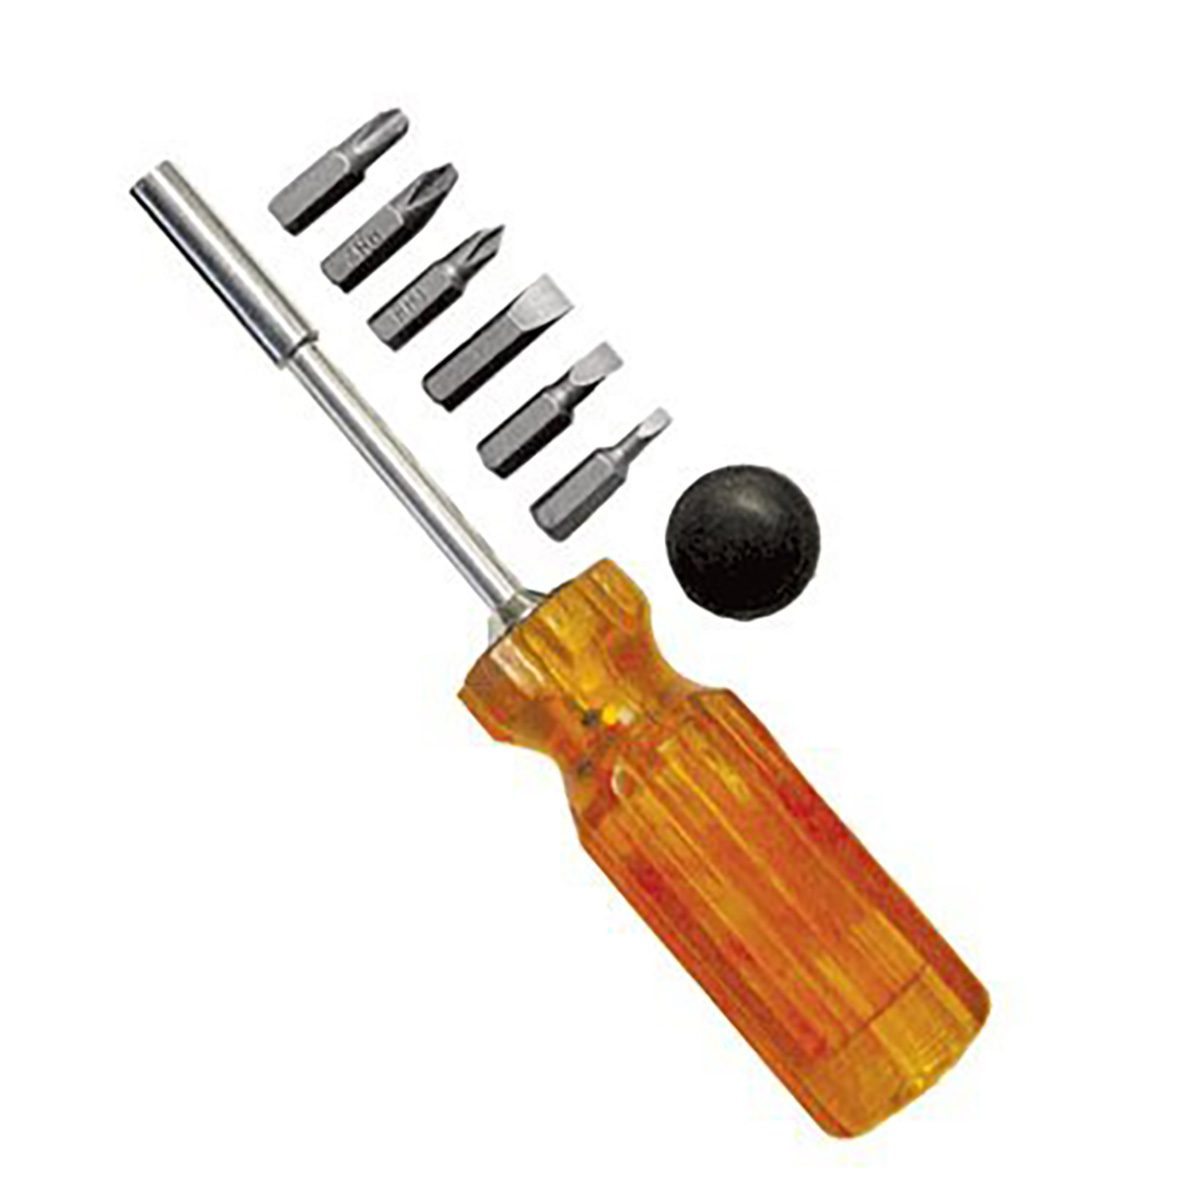 Magnetic Interchangeable Multi-Bit Screwdriver Set